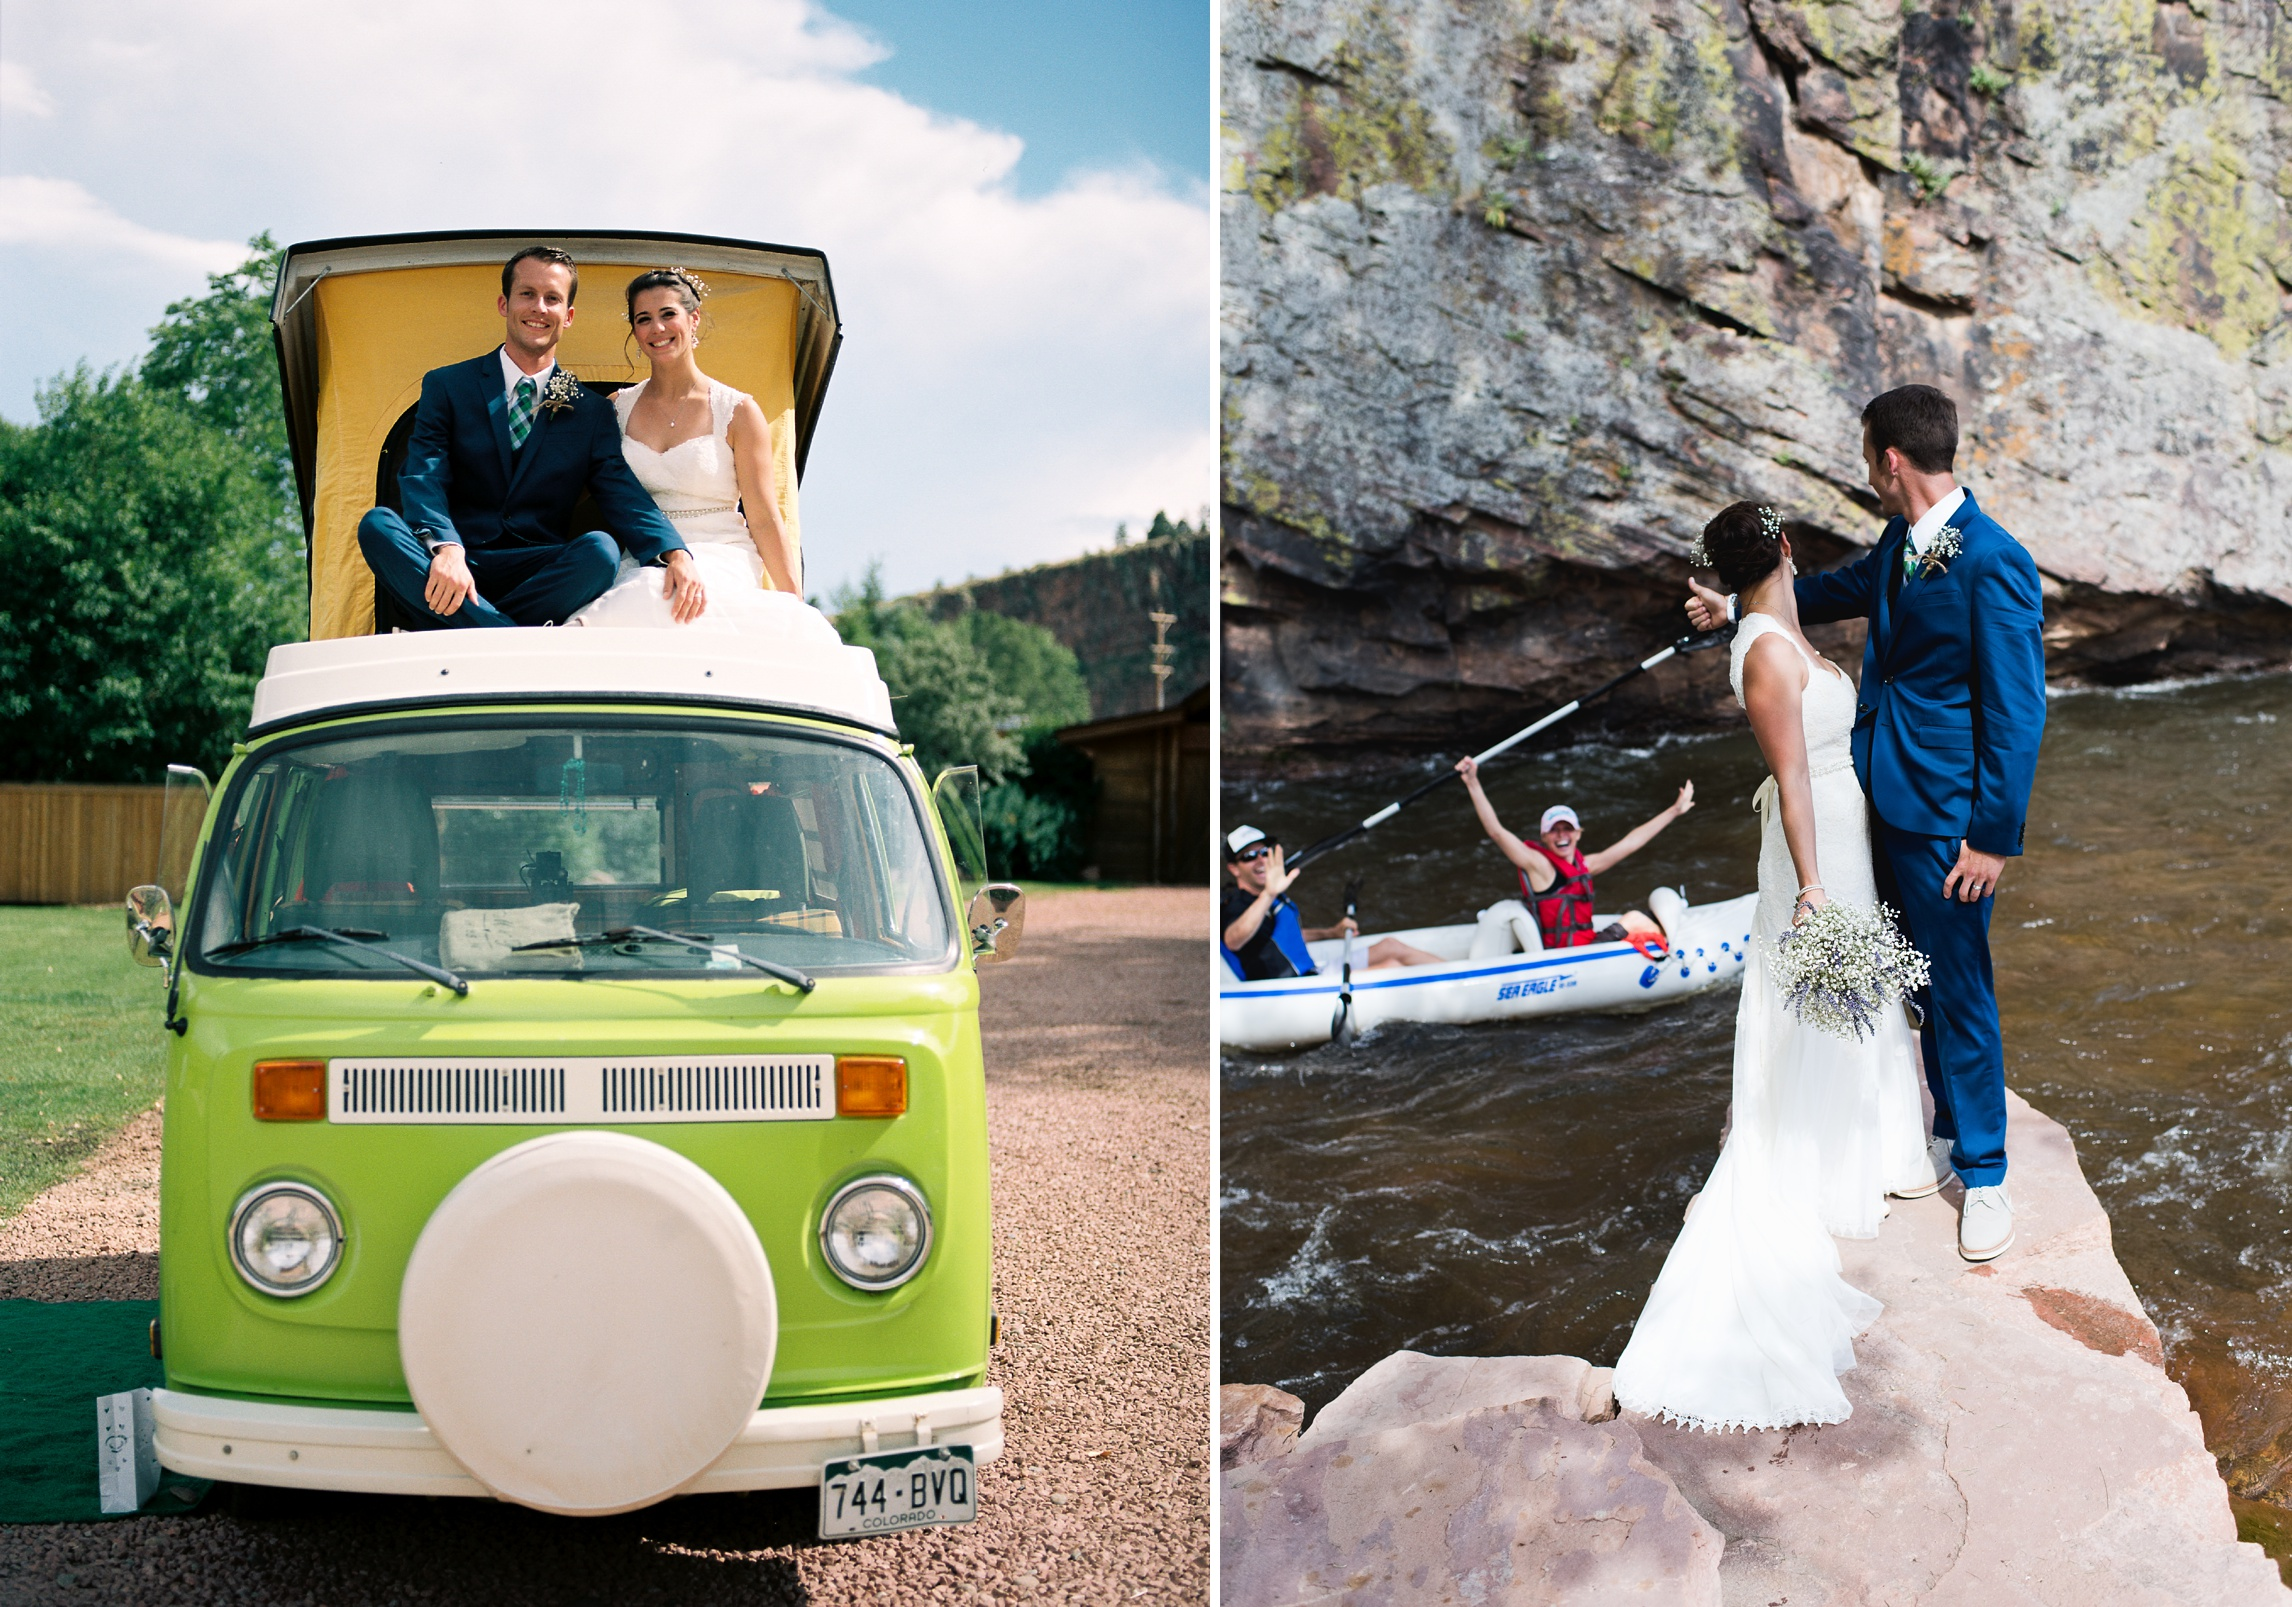 A bride and a groom on their vintage Volkswagen Bus at Planet Bluegrass in Lyons, Colorado. Kayakers invade the wedding shoot. Wedding photography by Sonja Salzburg of Sonja K Photography.